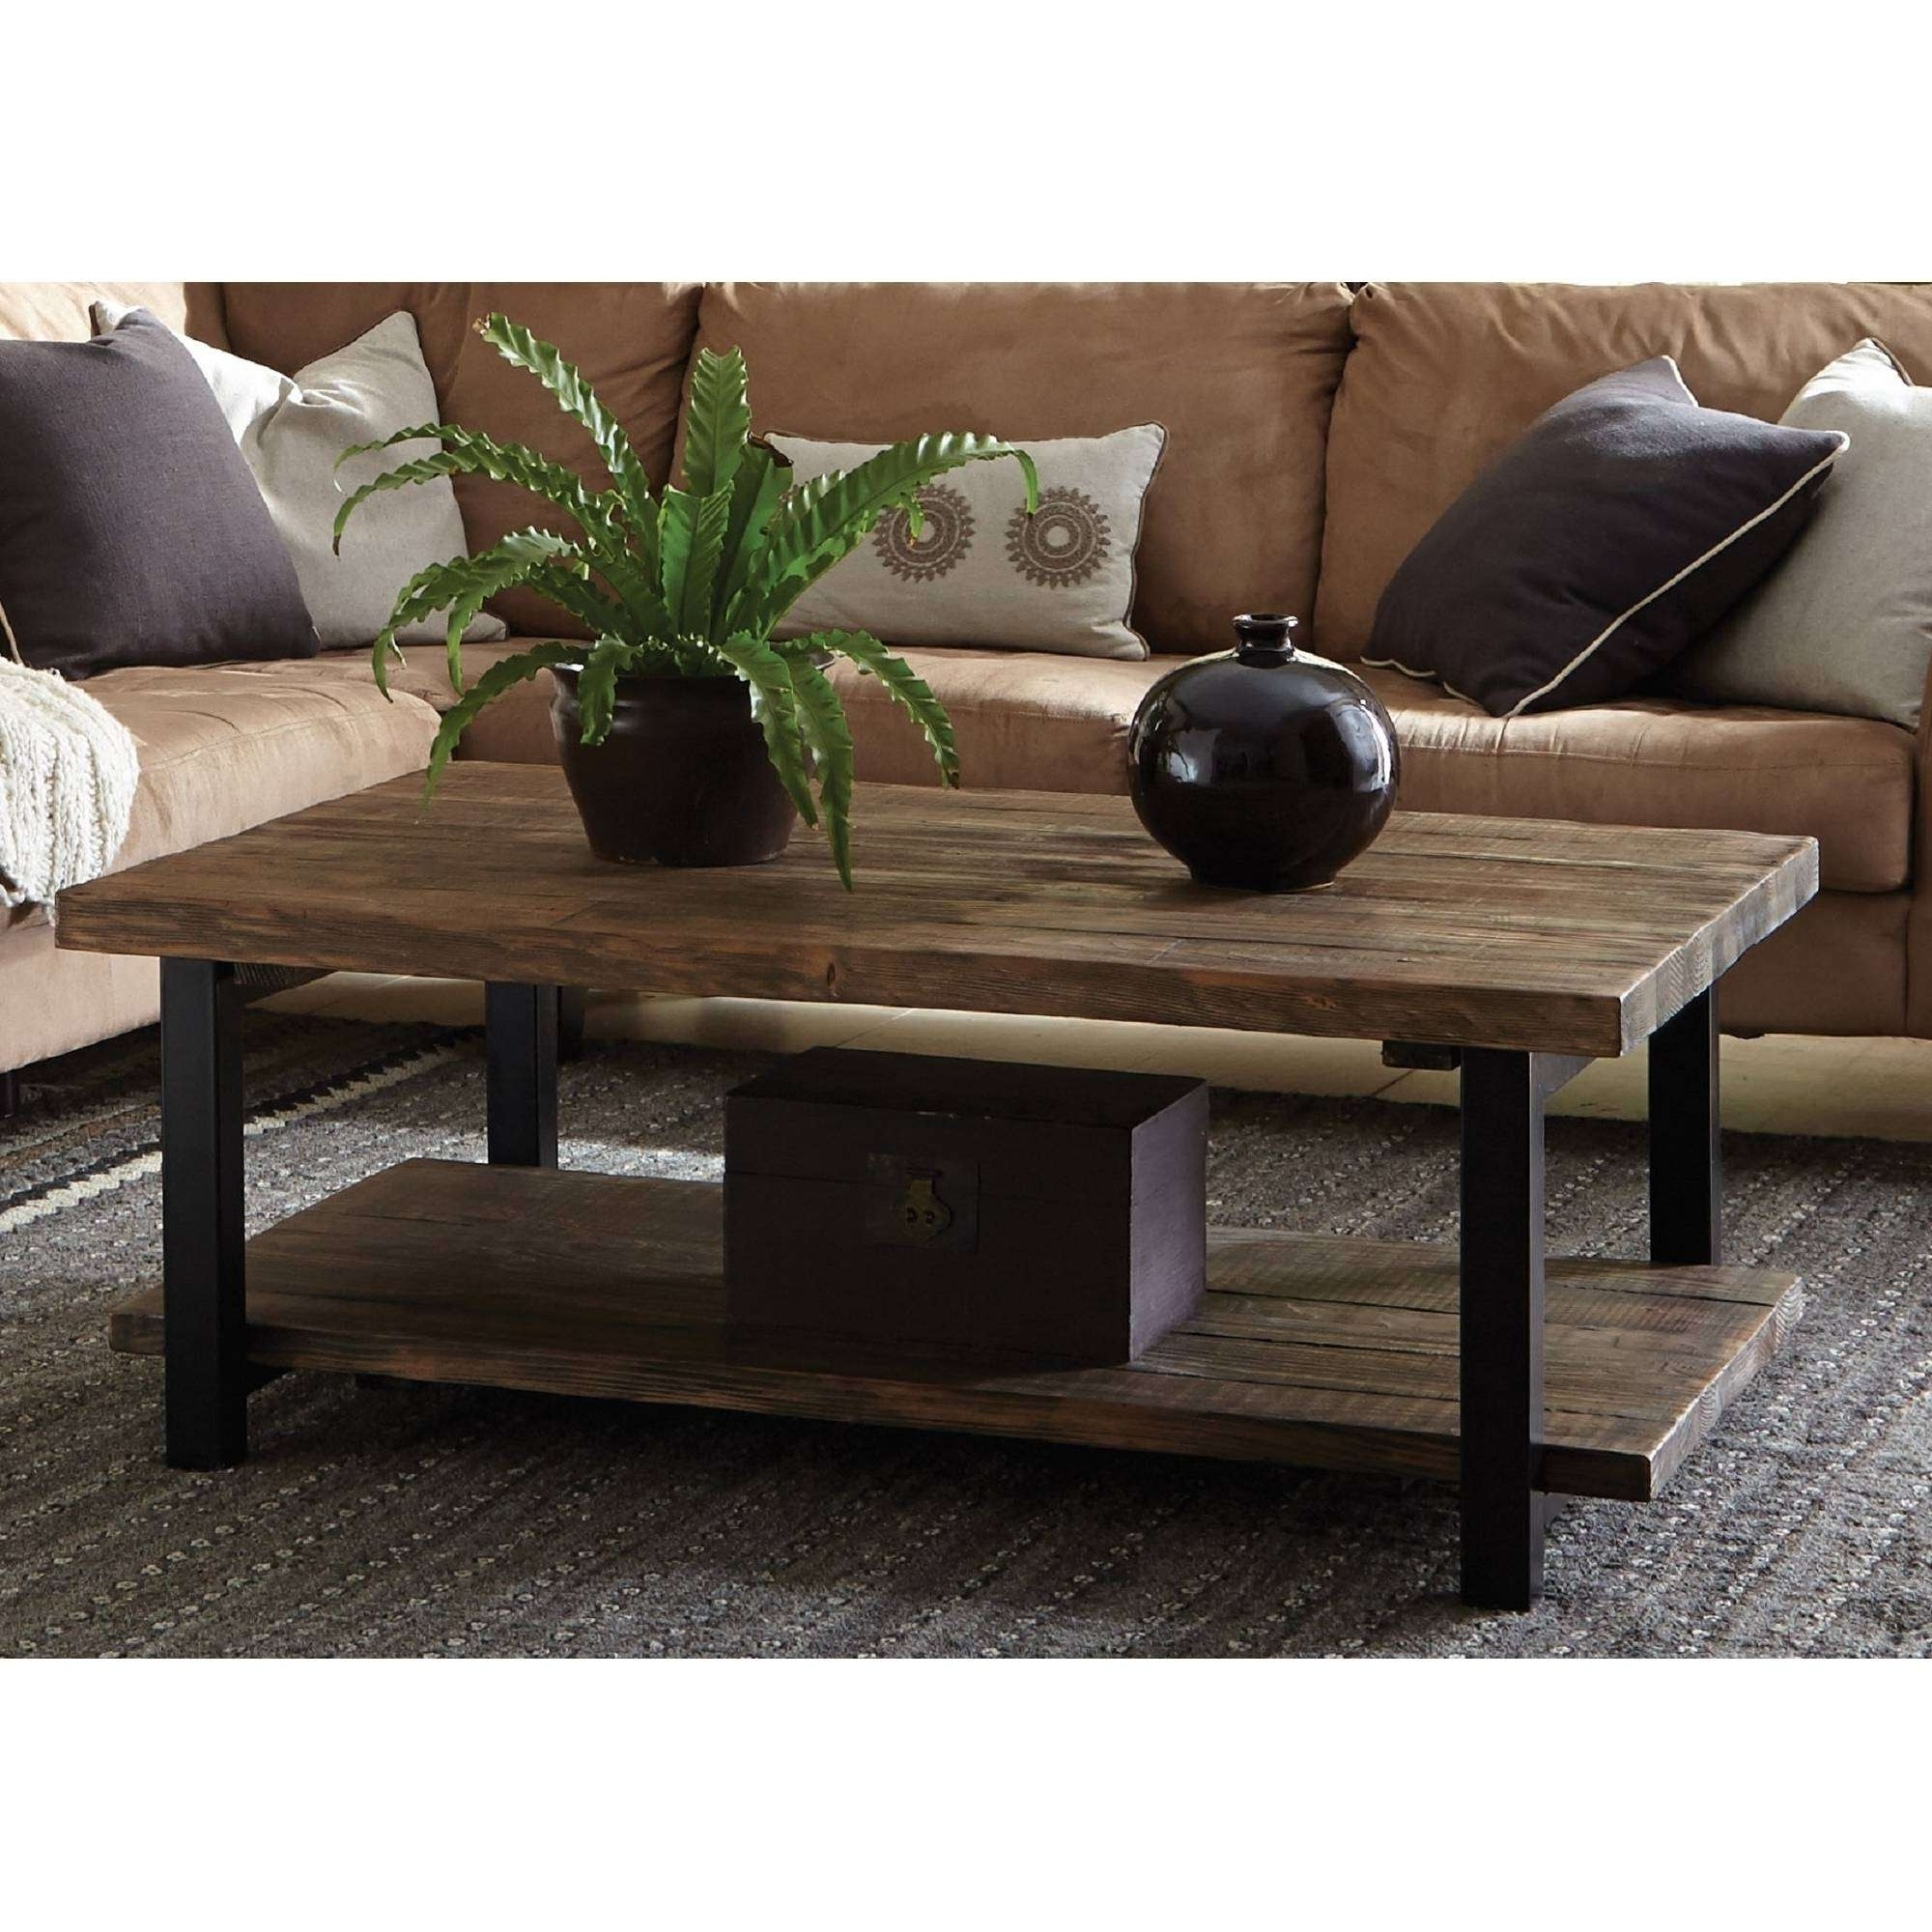 Coffee Table : Magnificent Cheap Coffee Tables White Round Coffee Throughout Well Known Cheap Coffee Tables With Storage (View 5 of 20)